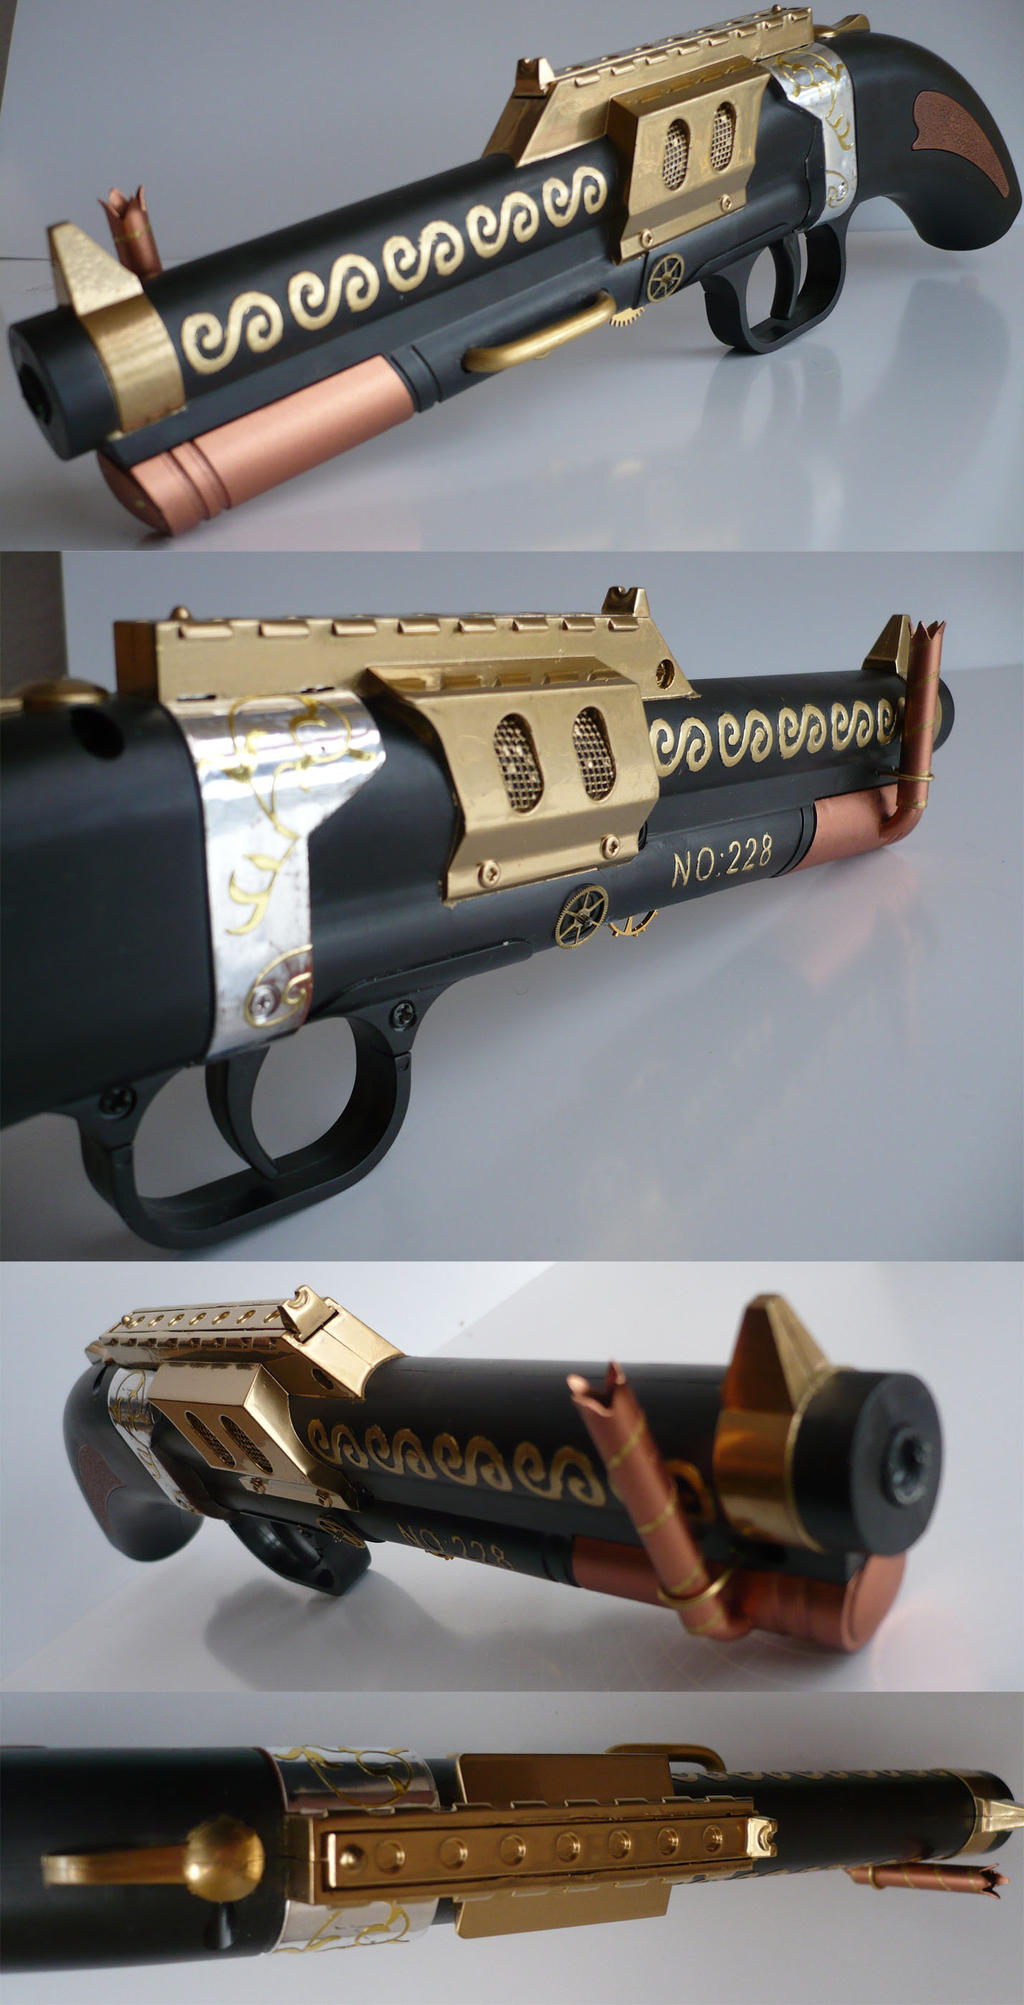 Steampunk no.228 Steam-pistol serial no. 001_02 by Arsenal-Best